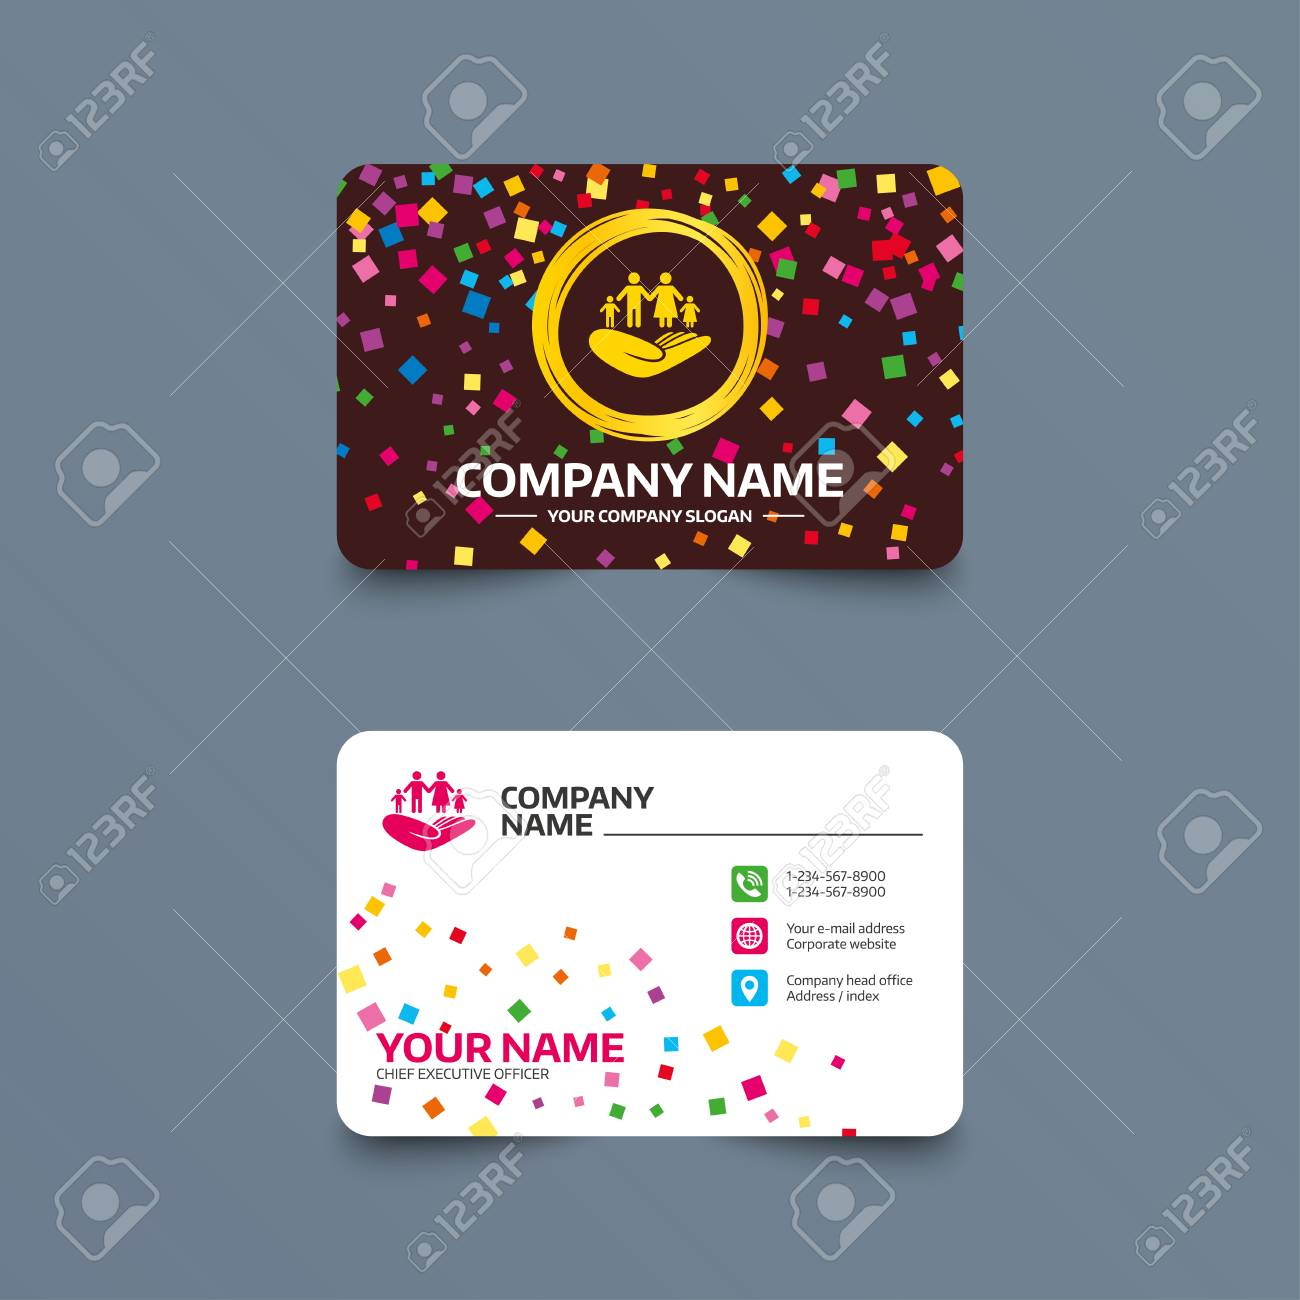 Business Card Template With Confetti Pieces. Family Life Insurance ...